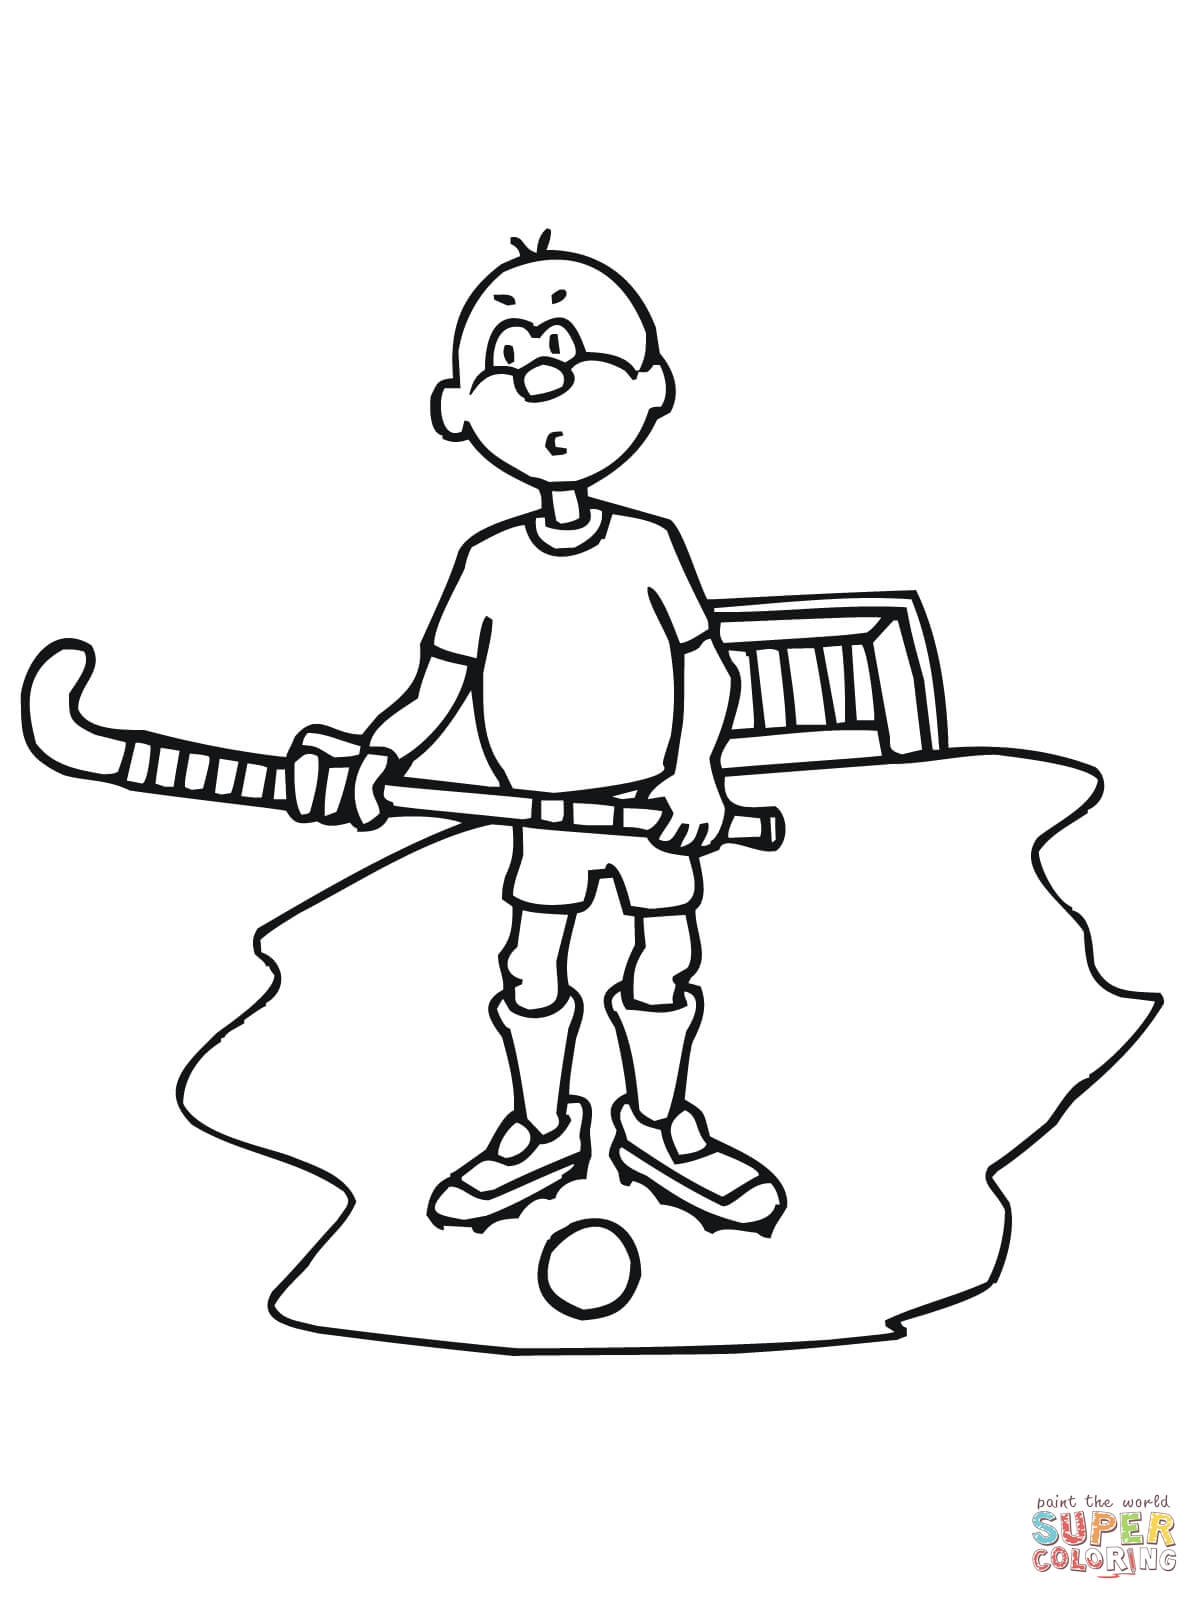 Boy With Field Hockey Stick And Ball Coloring Page